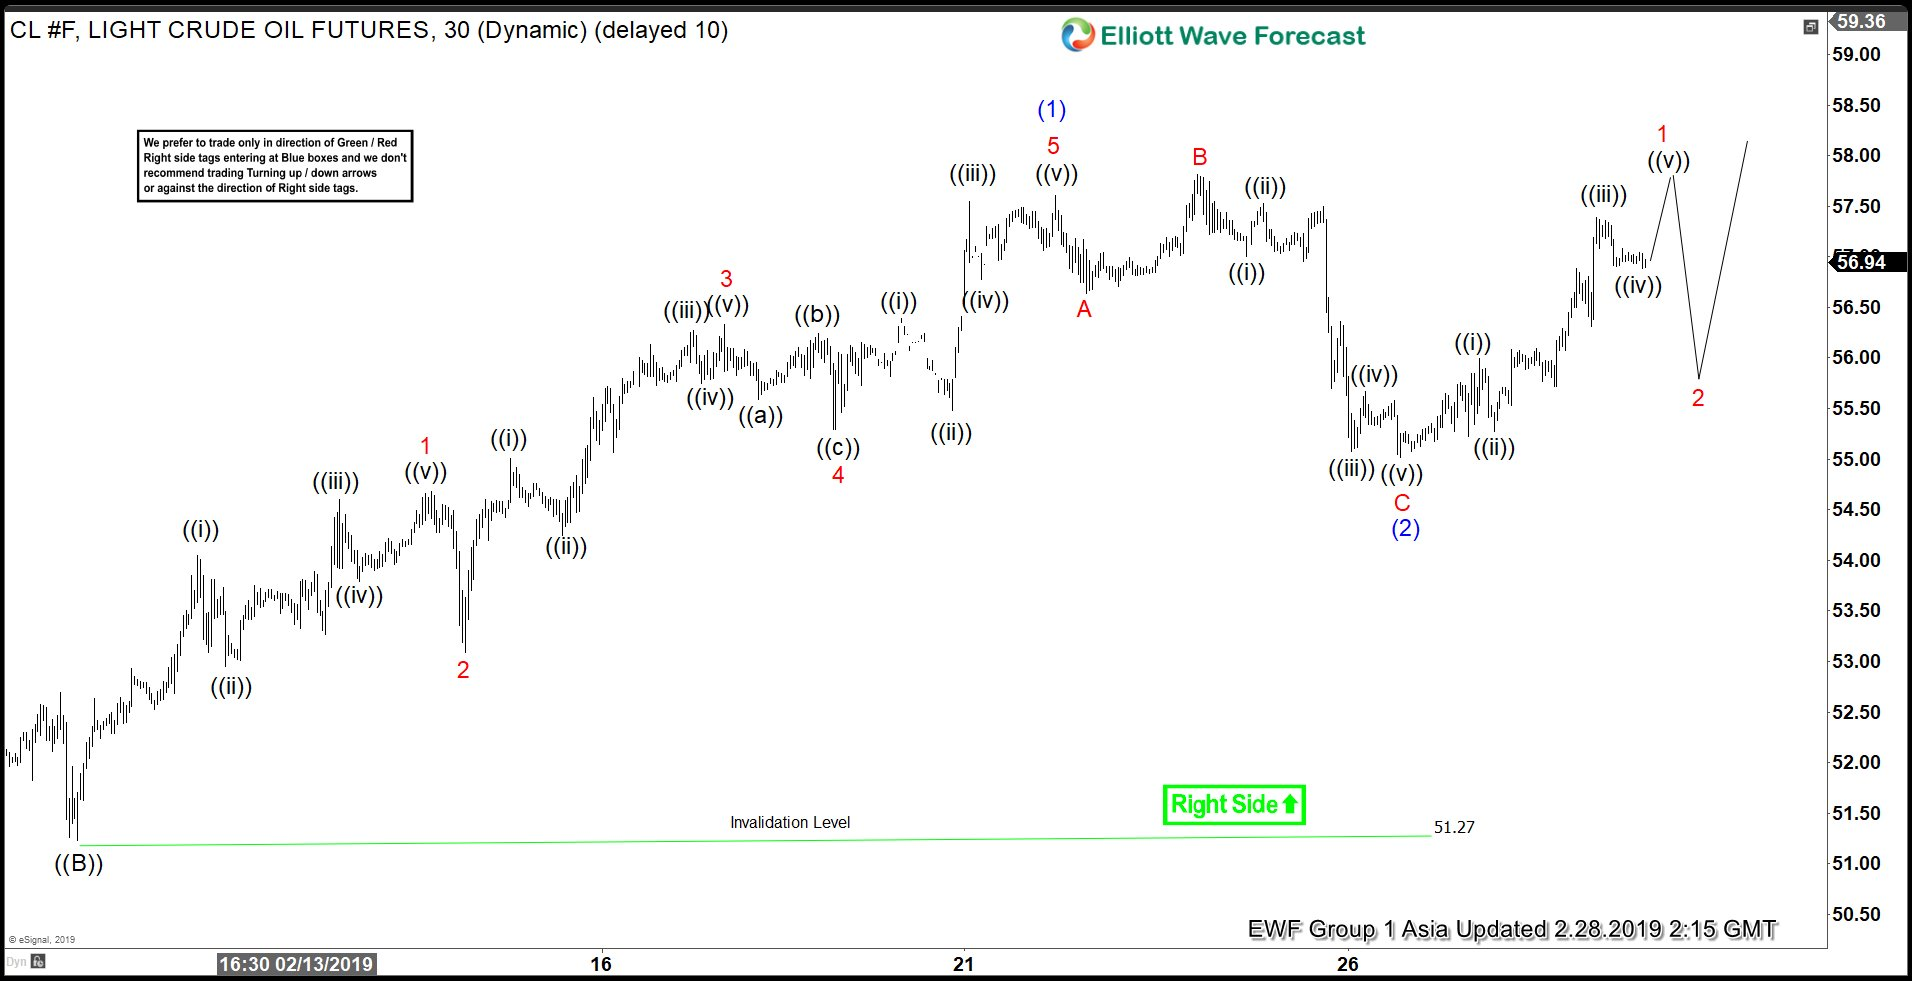 Elliott Wave view: Oil on the verge of breakout